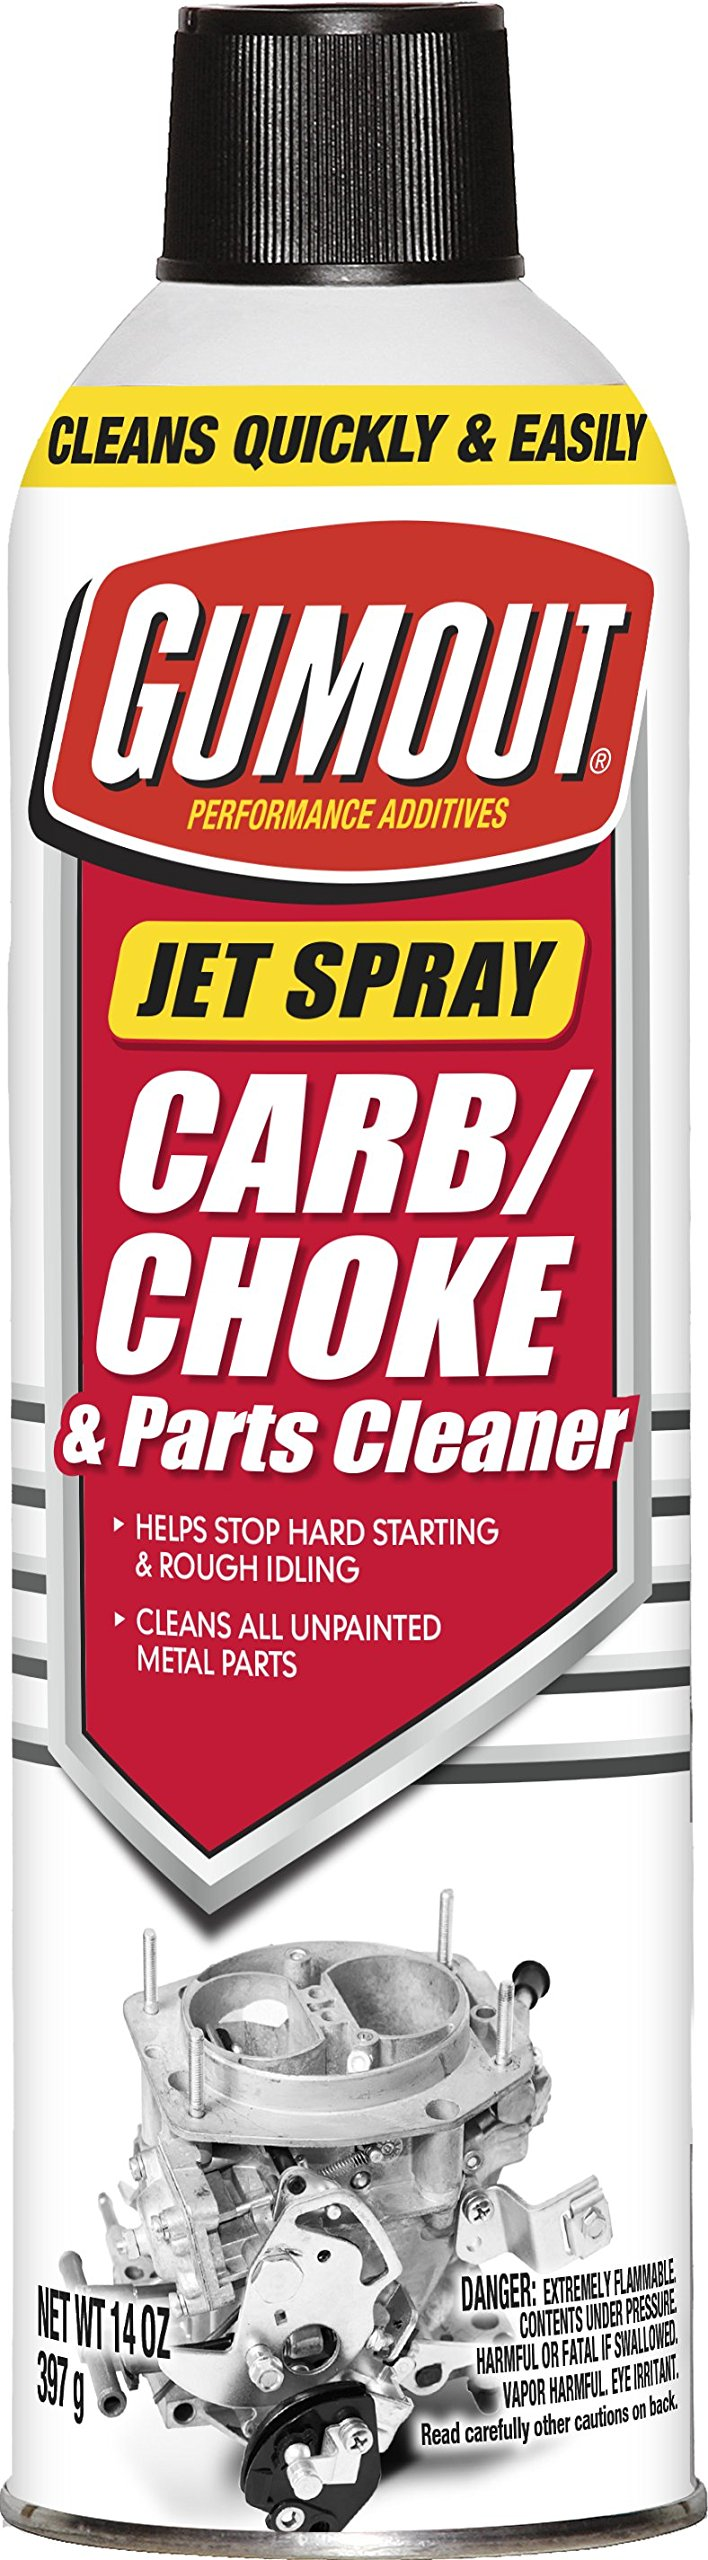 Gumout 800002231-6PK  Carb and Choke Cleaner, 14 oz. (Pack of 6)